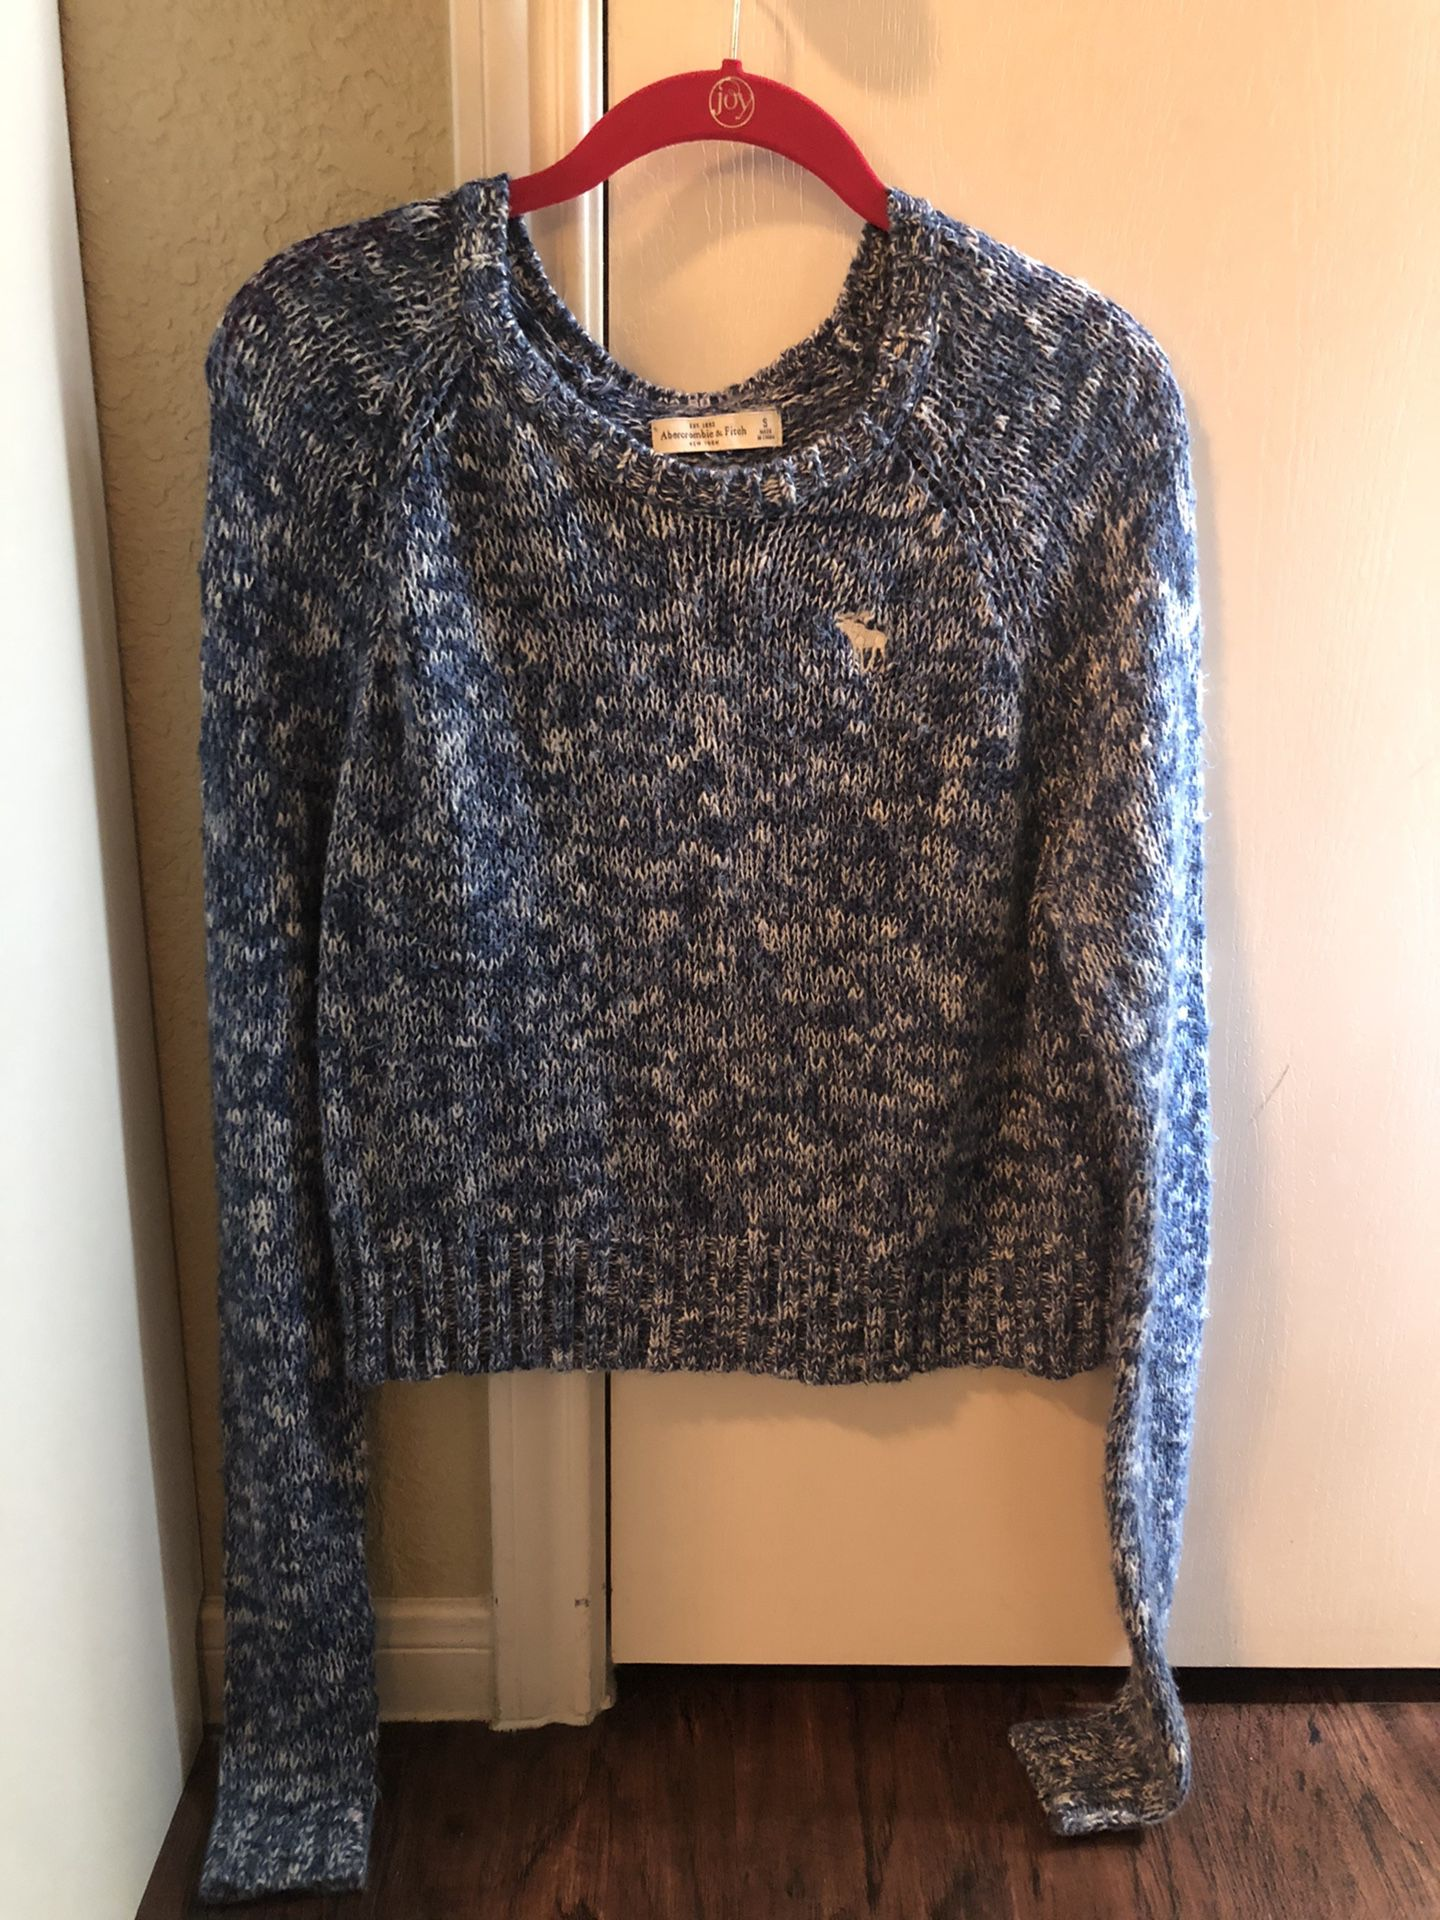 Abercrombie & Fitch Blue & White Knit Sweater, Small